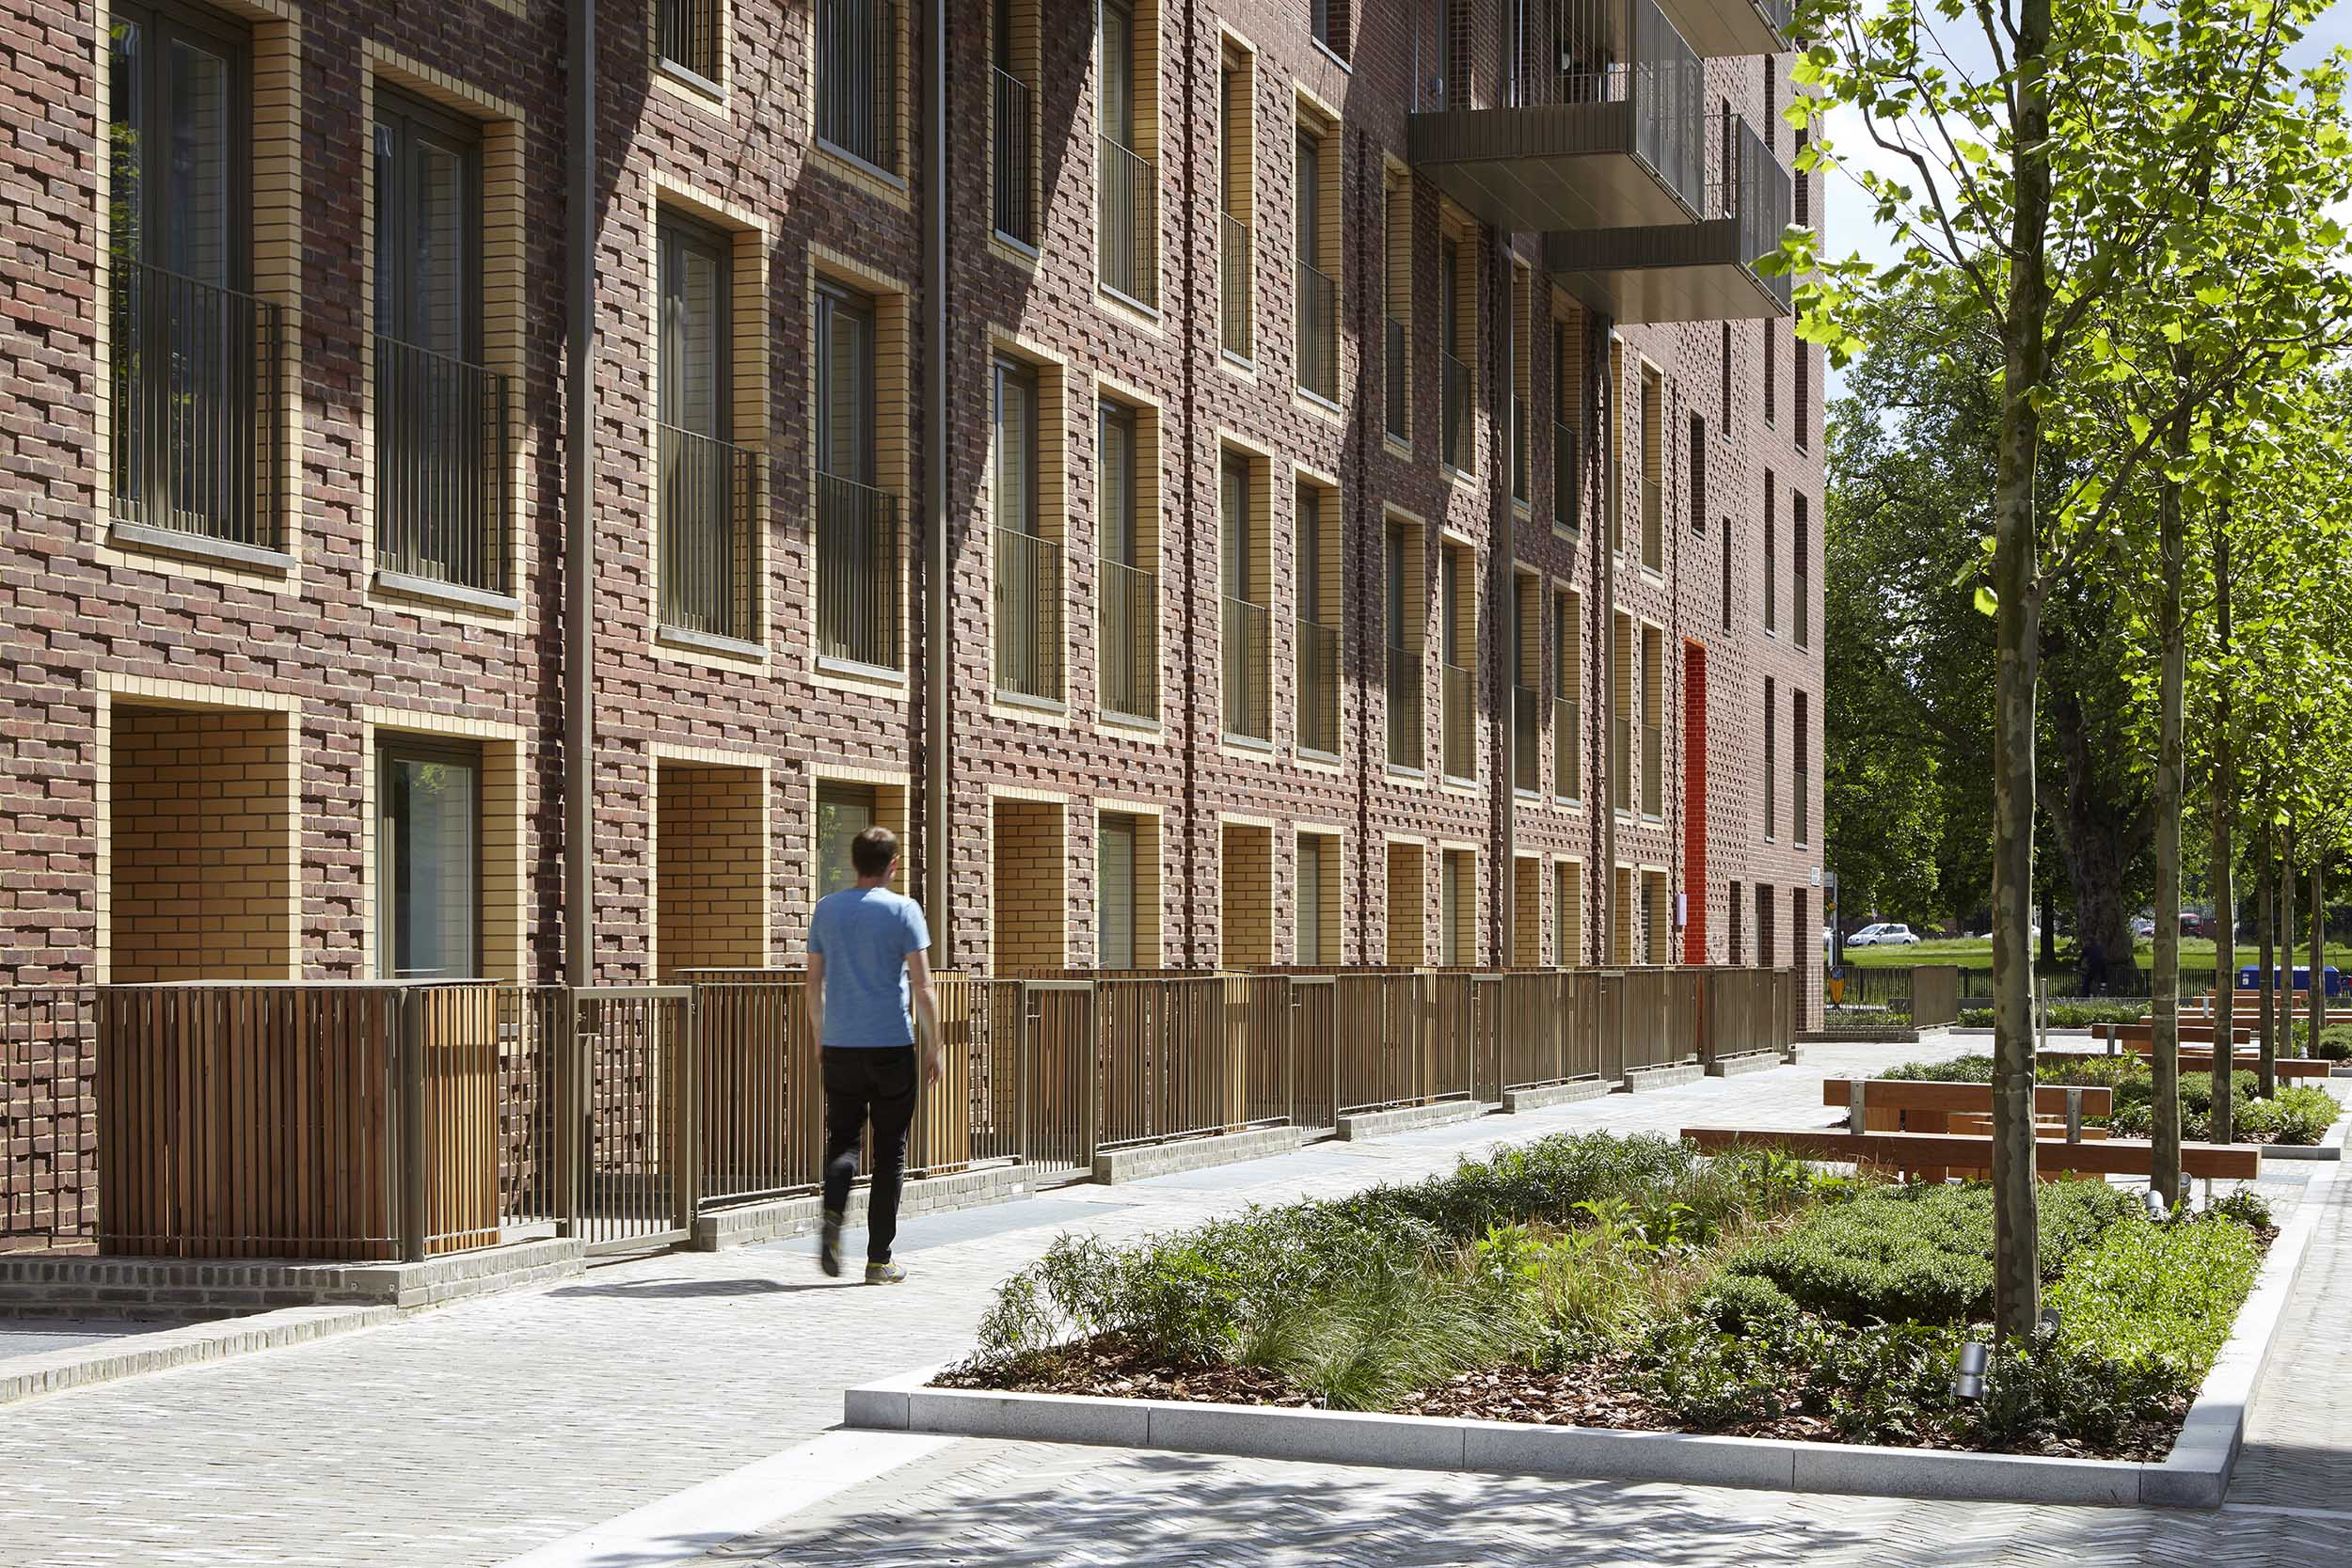 The estate at  Burridge Gardens  is now connected to surrounding green space, transport links and the local community; Photo ©Jack Hobhouse